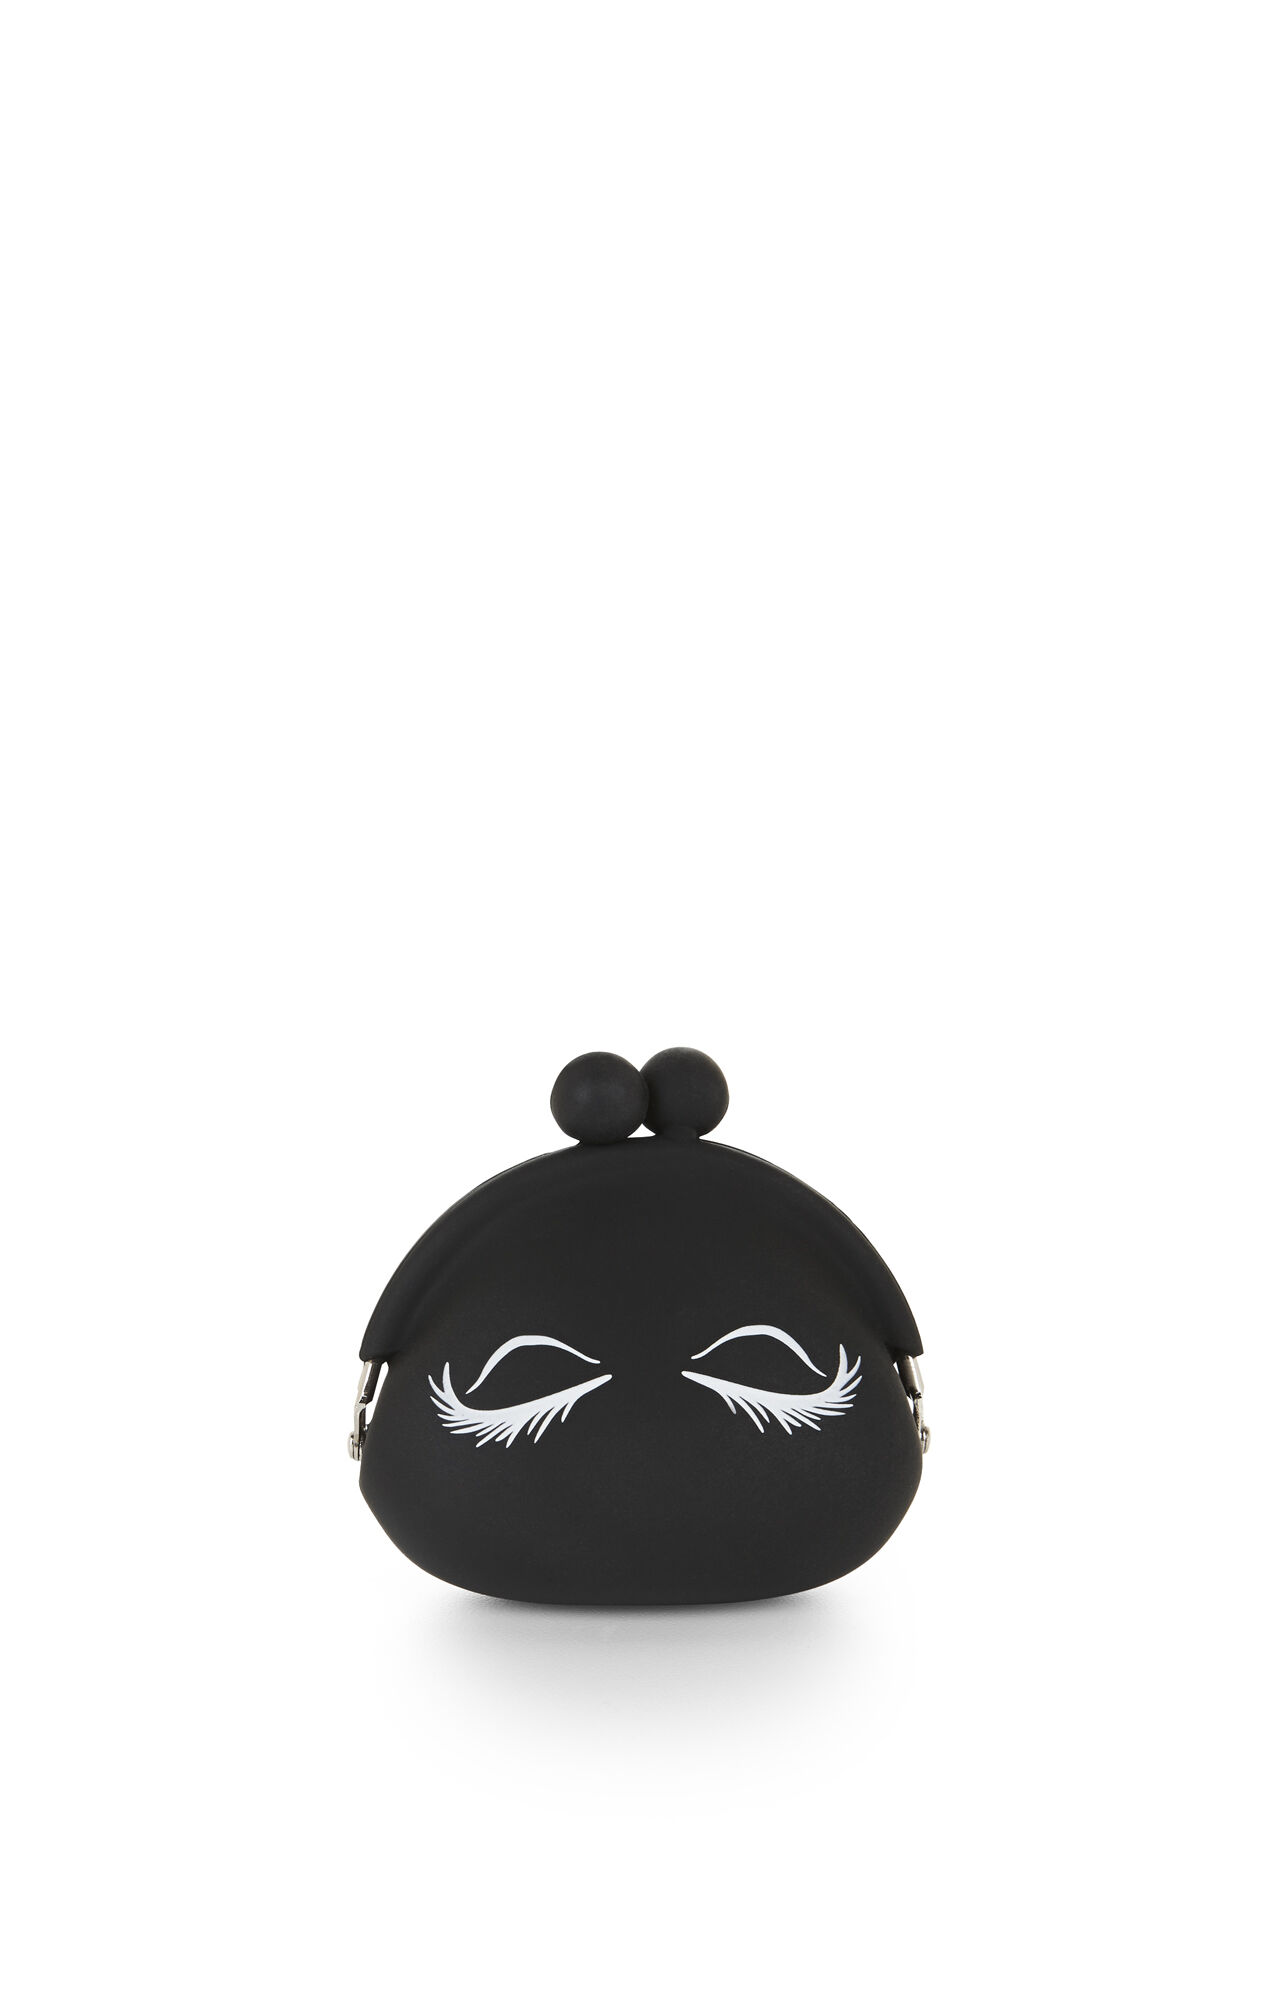 Eyelashes Silicone Coin Purse